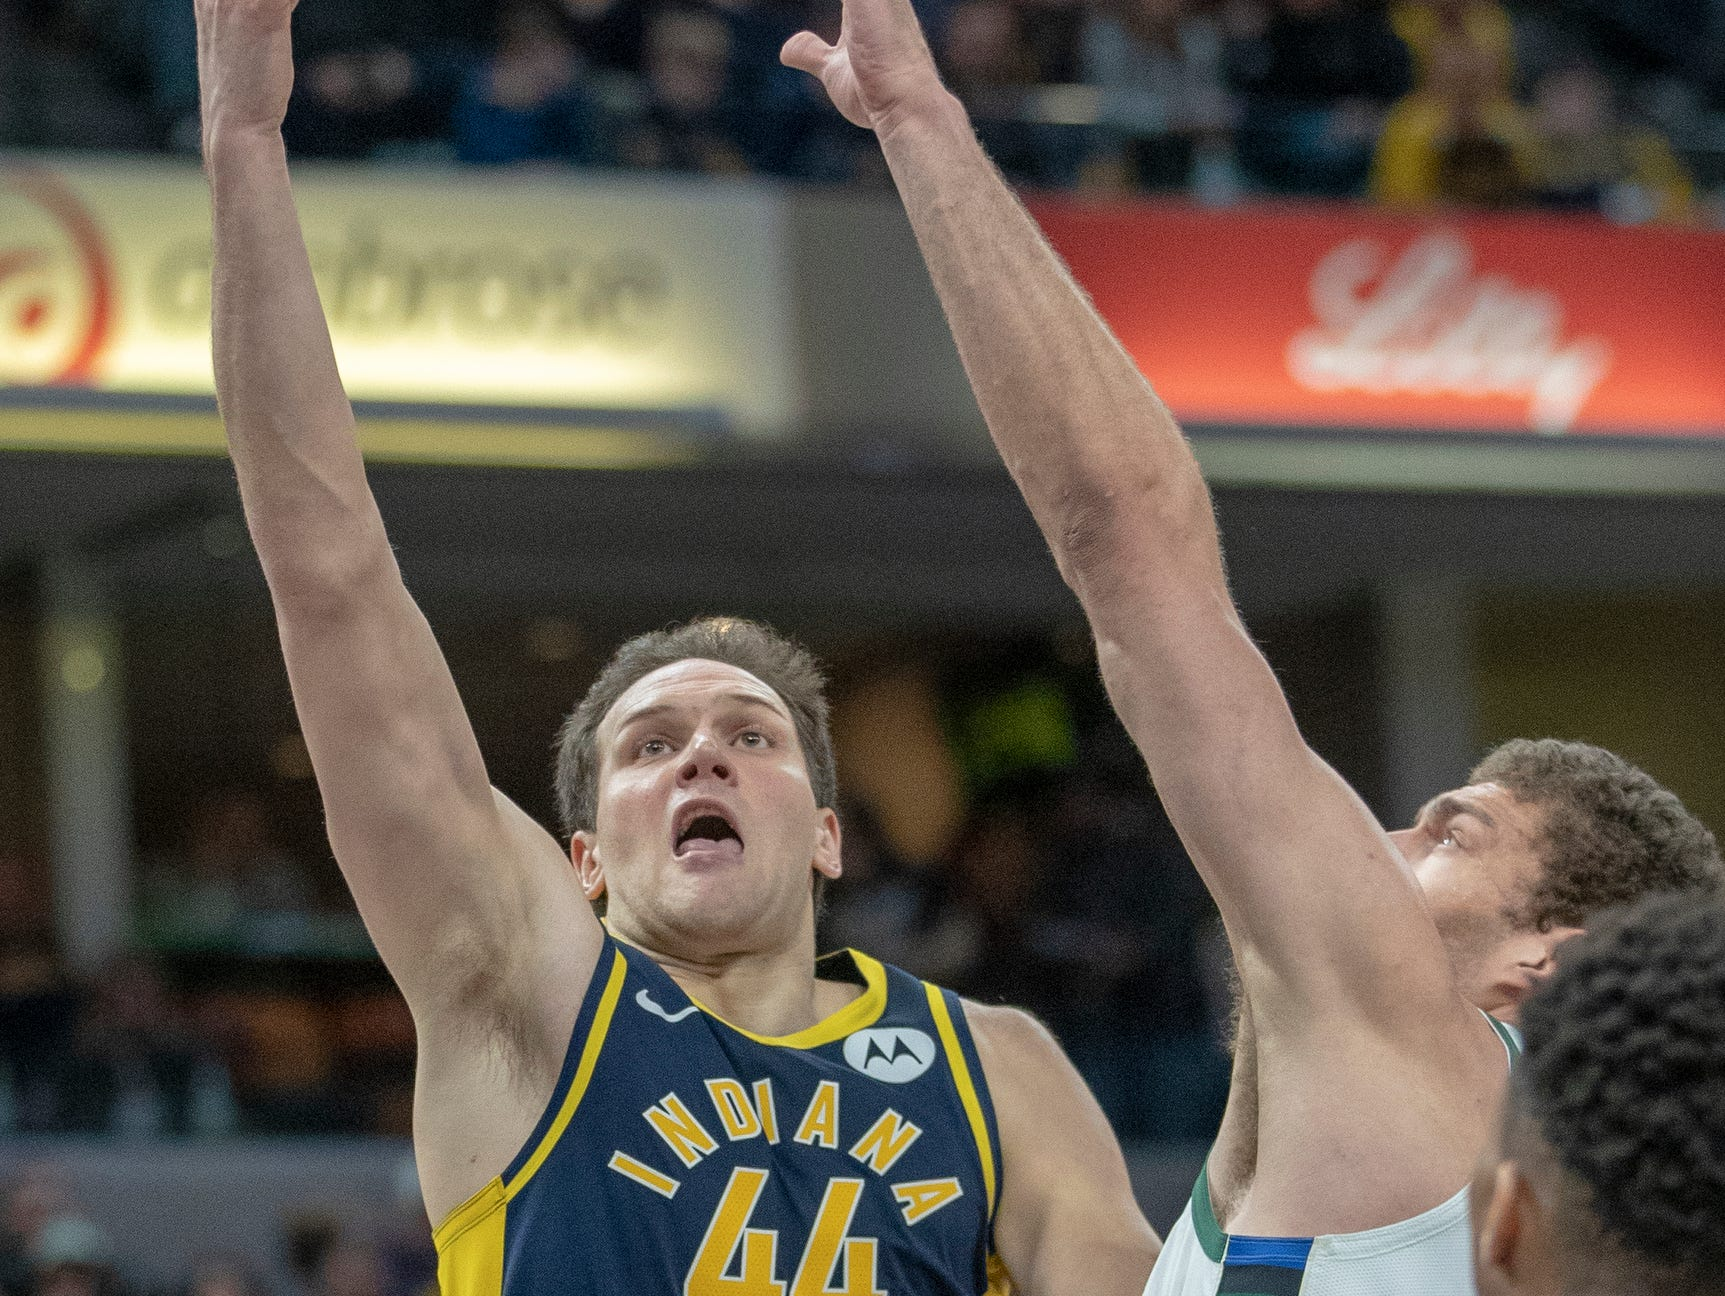 Bojan Bogdanovic of the Indiana Pacers puts up a shot against Milwaukee, Bankers Life Fieldhouse, Indianapolis, Wednesday, Feb. 13, 2019. Milwaukee won 106-97.